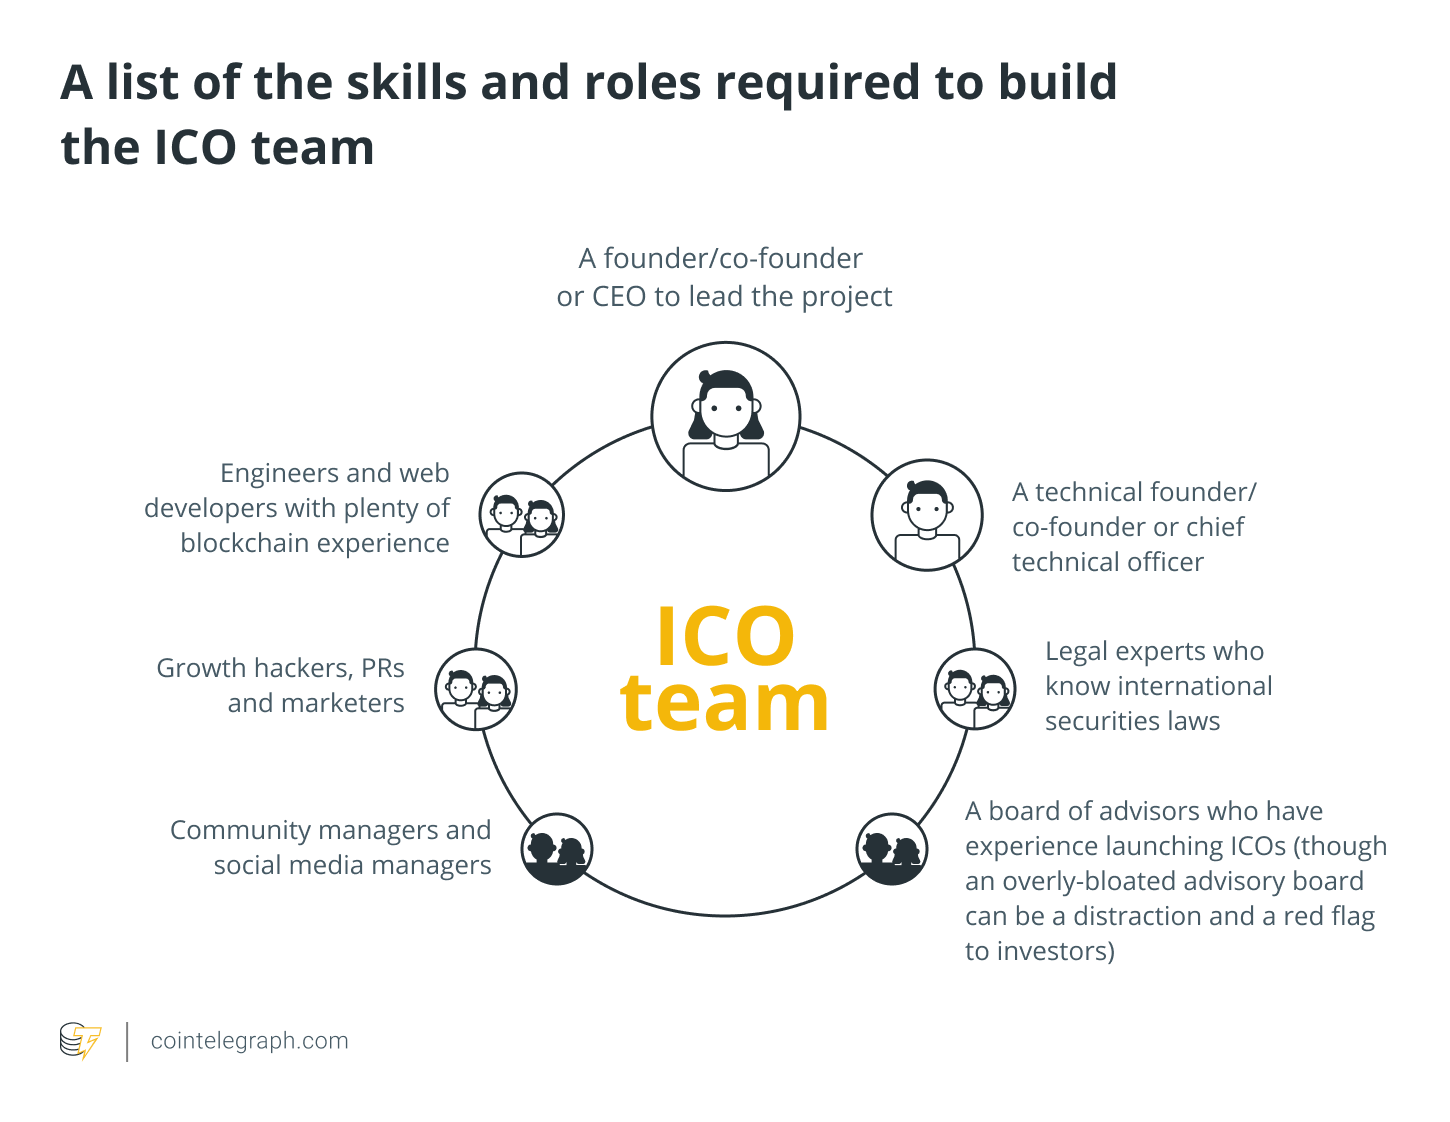 list of the skills and roles required to build the ICO team